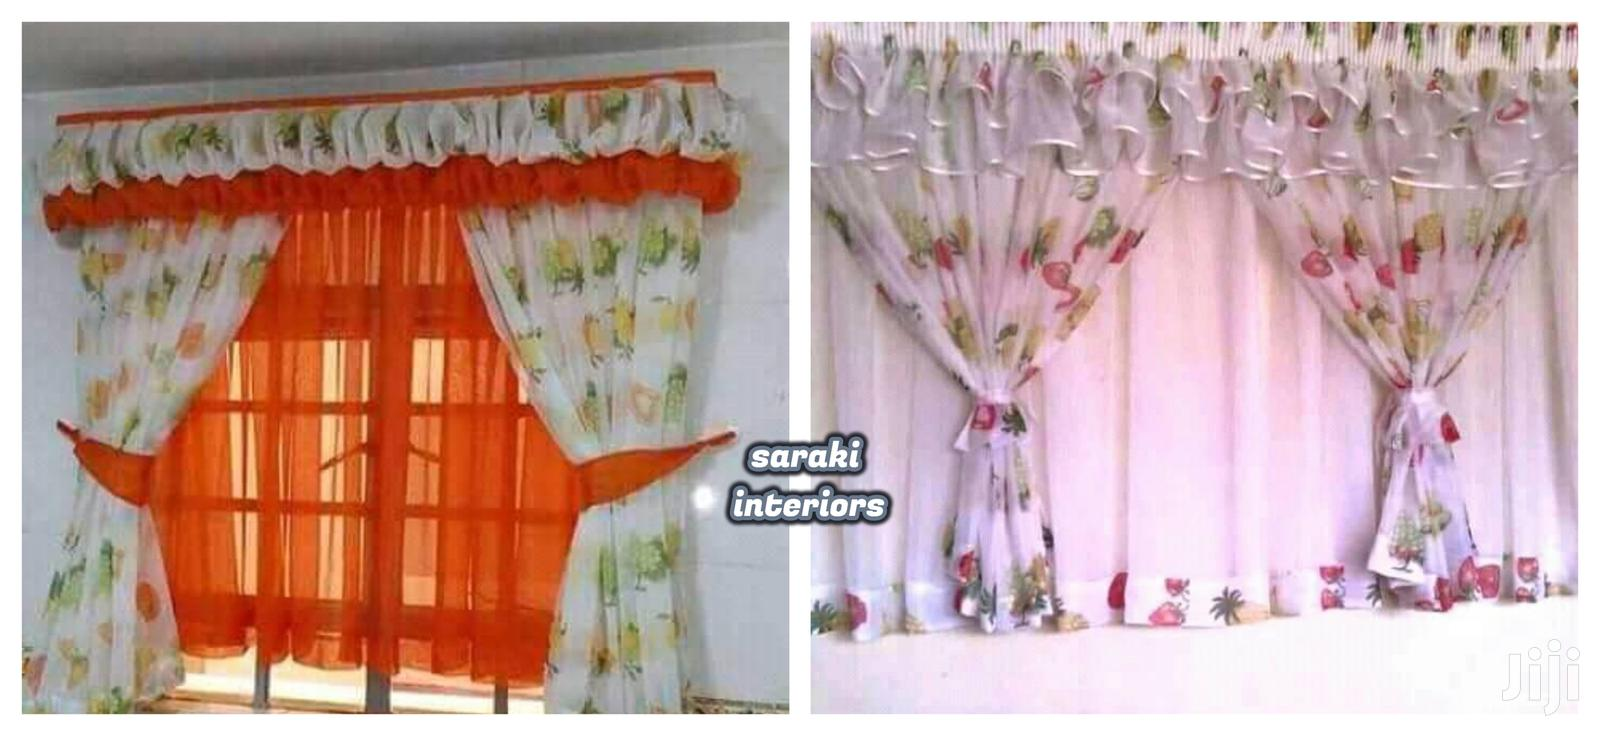 Colourfull Kitchen Curtains In Nairobi Central Home Accessories Saraki Interiors Jiji Co Ke For Sale In Nairobi Central Buy Home Accessories From Saraki Interiors On Jiji Co Ke